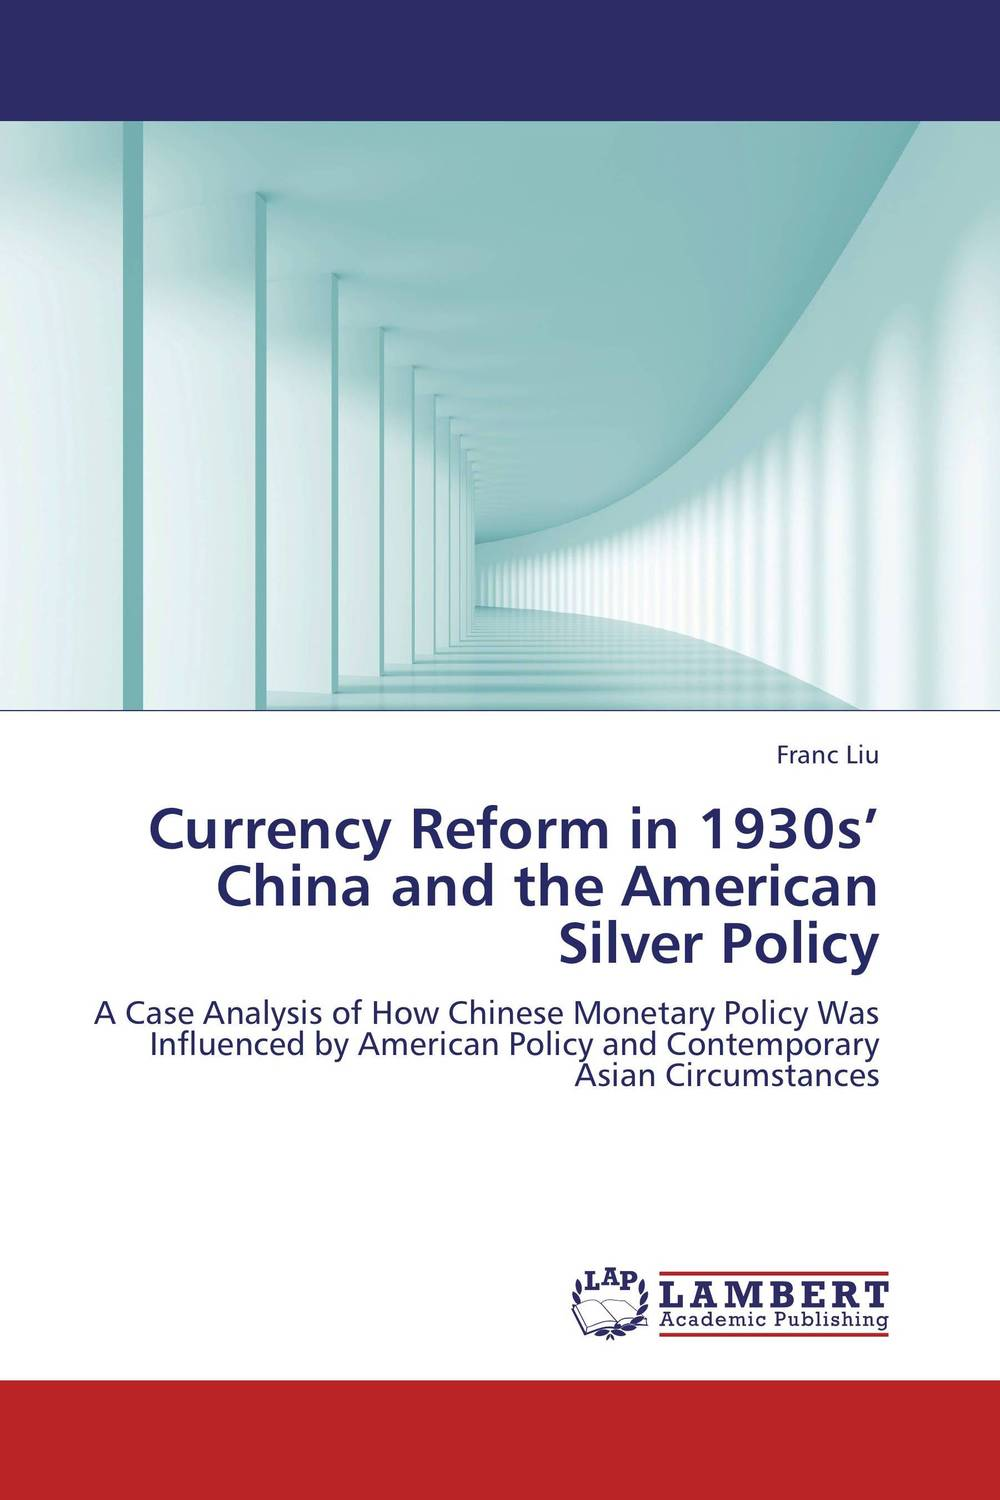 Currency Reform in 1930s' China and the American Silver Policy olena rabtsun the rise of the euro as a global currency